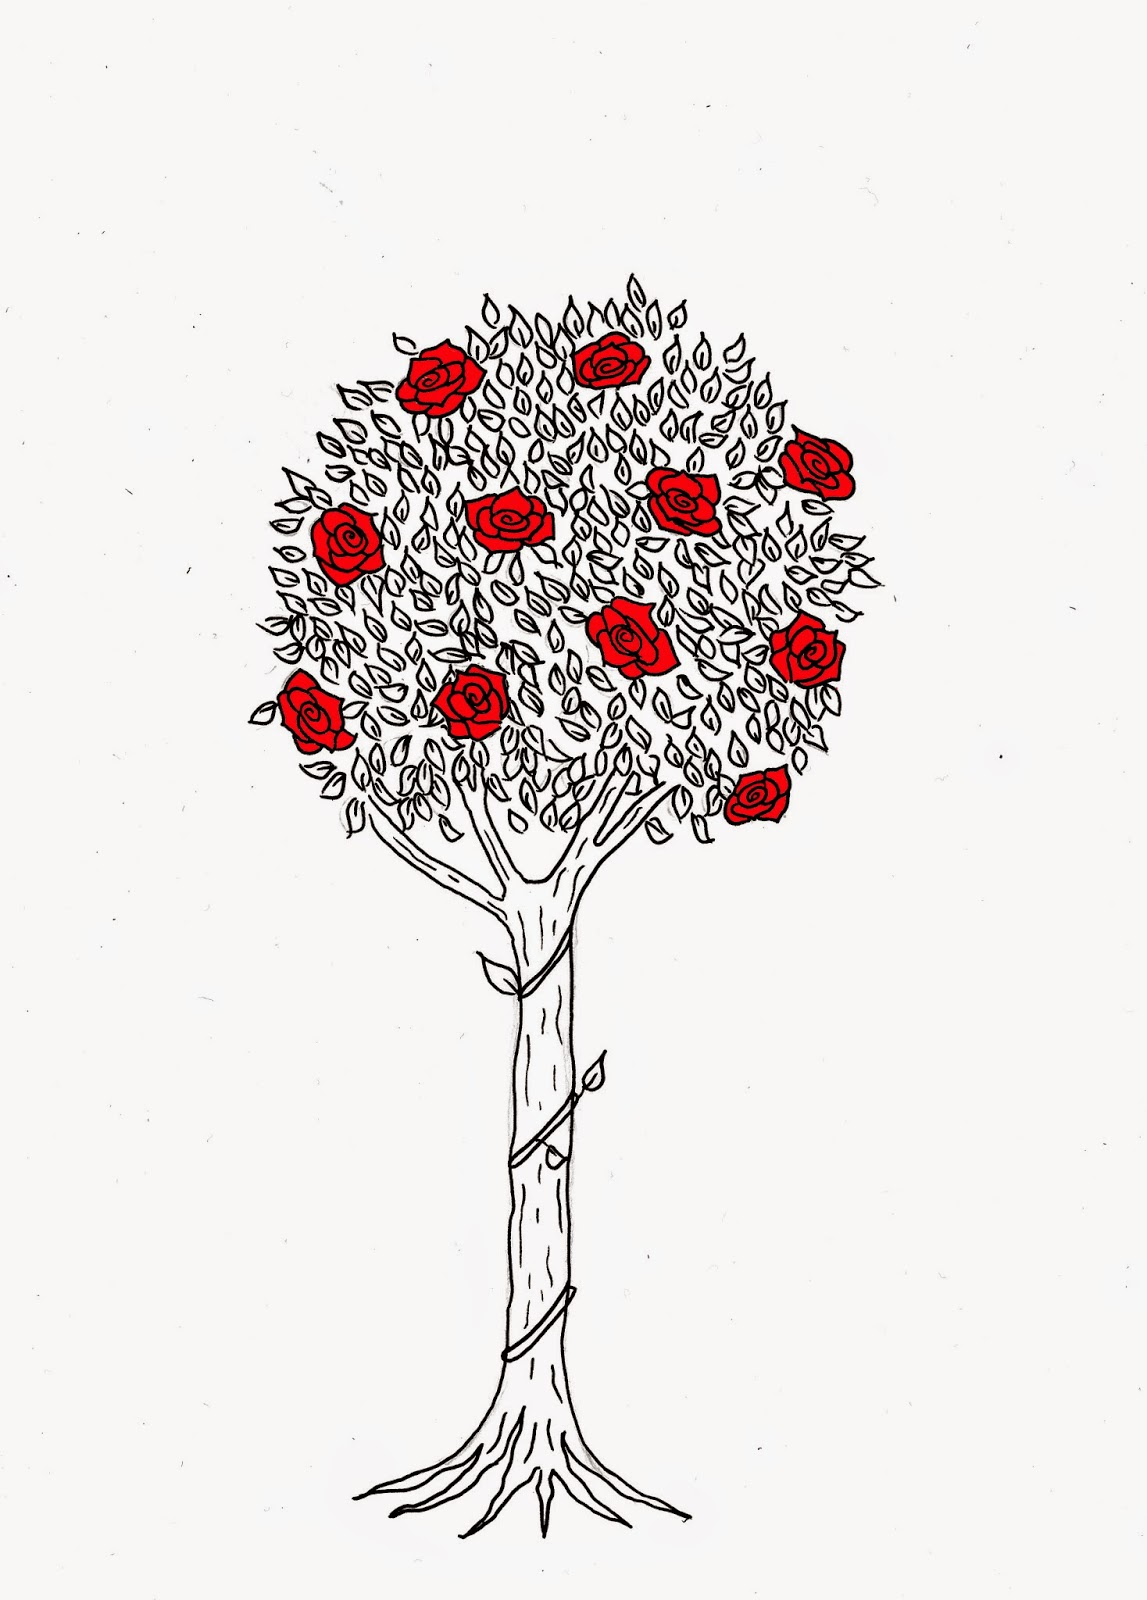 Drawn rose bush rose tree The adding because its the